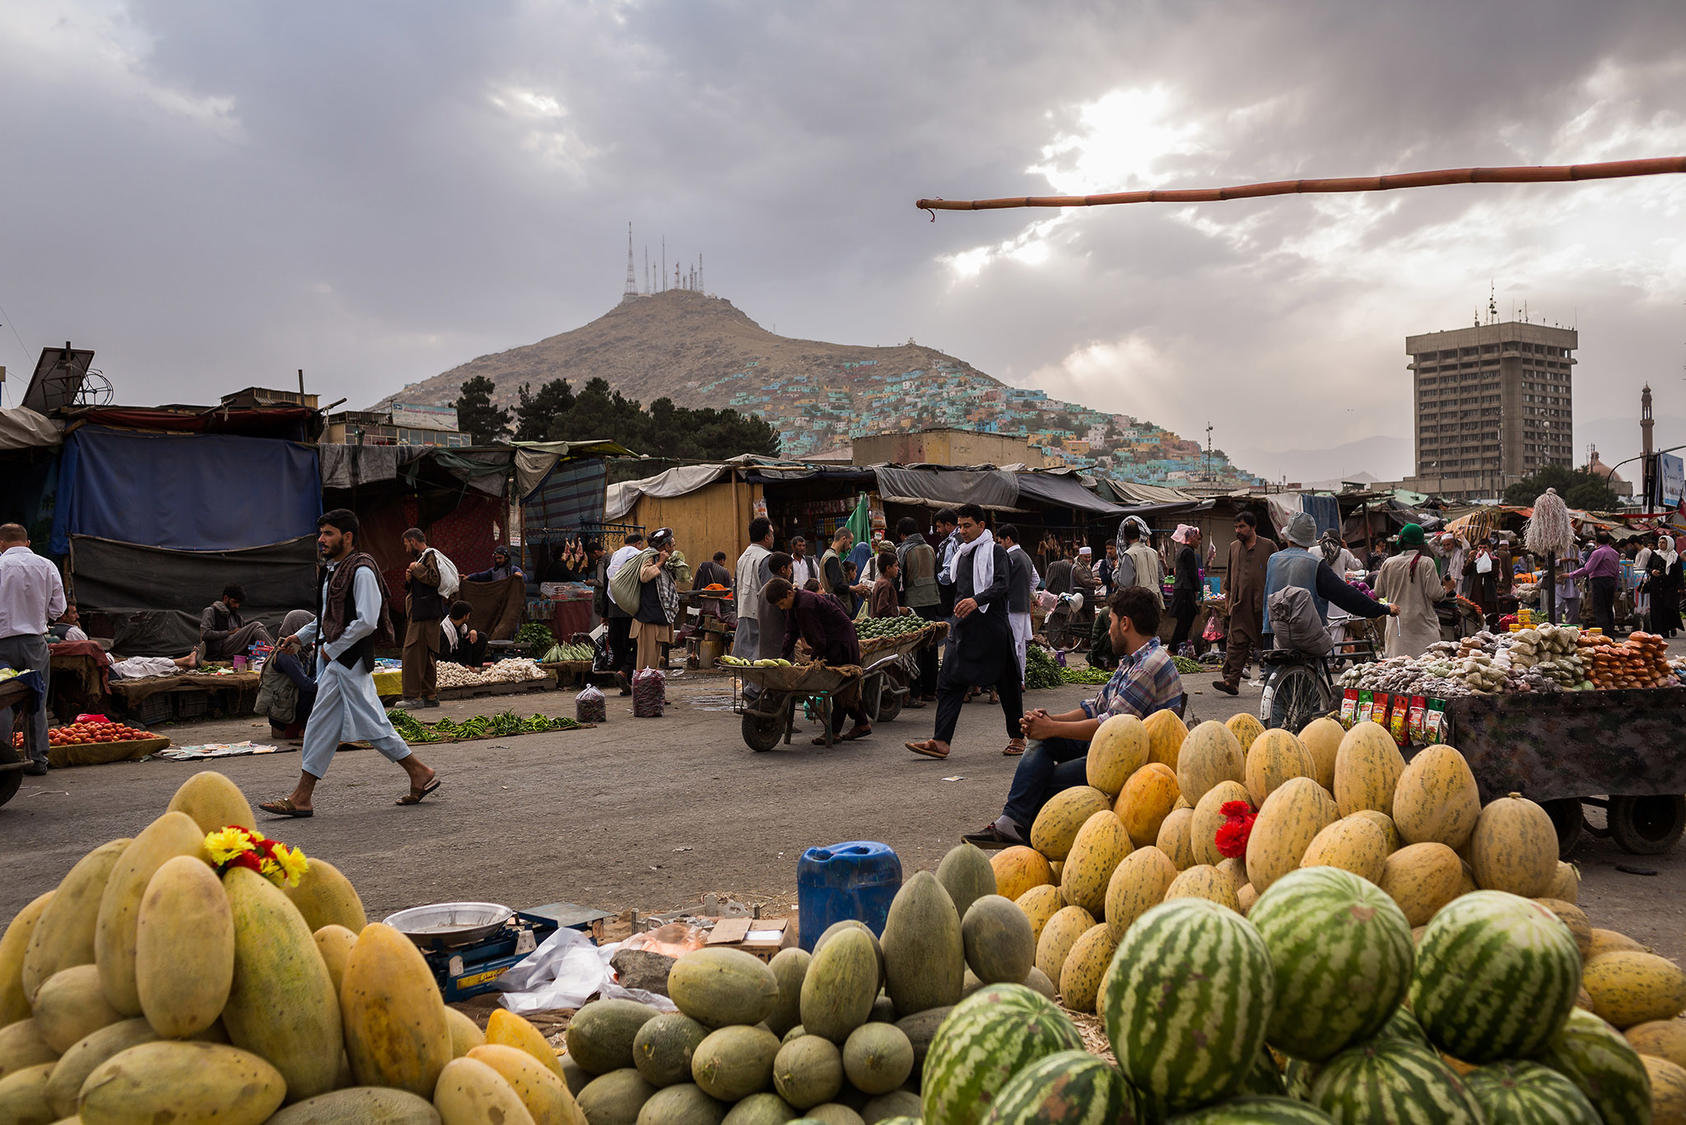 Customers shop for fruits at the retail market along Kabul river in Afghanistan in 2017. (Jim Huylebroek/The New York Times)